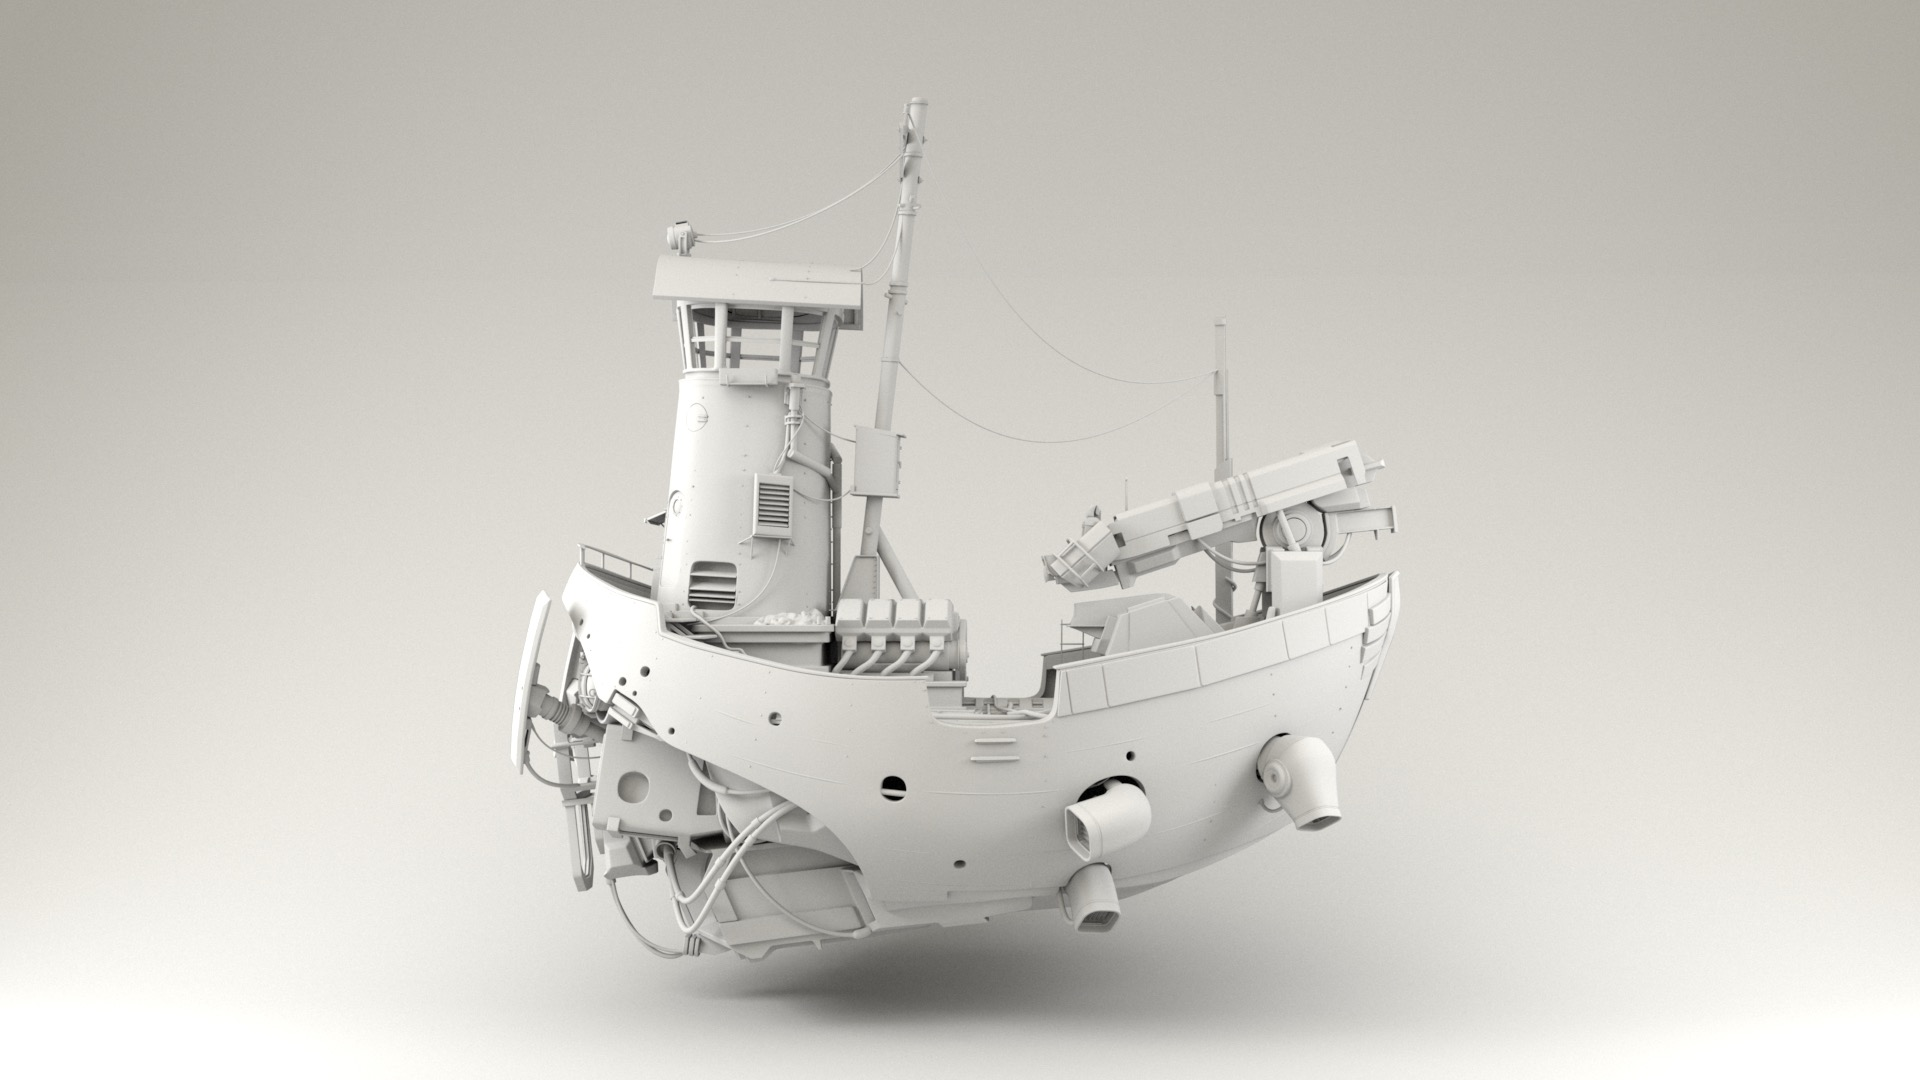 Figure 2: Scifi ship base model provided by Pixar, rendered against a white cyclorama background using a basic skydome.